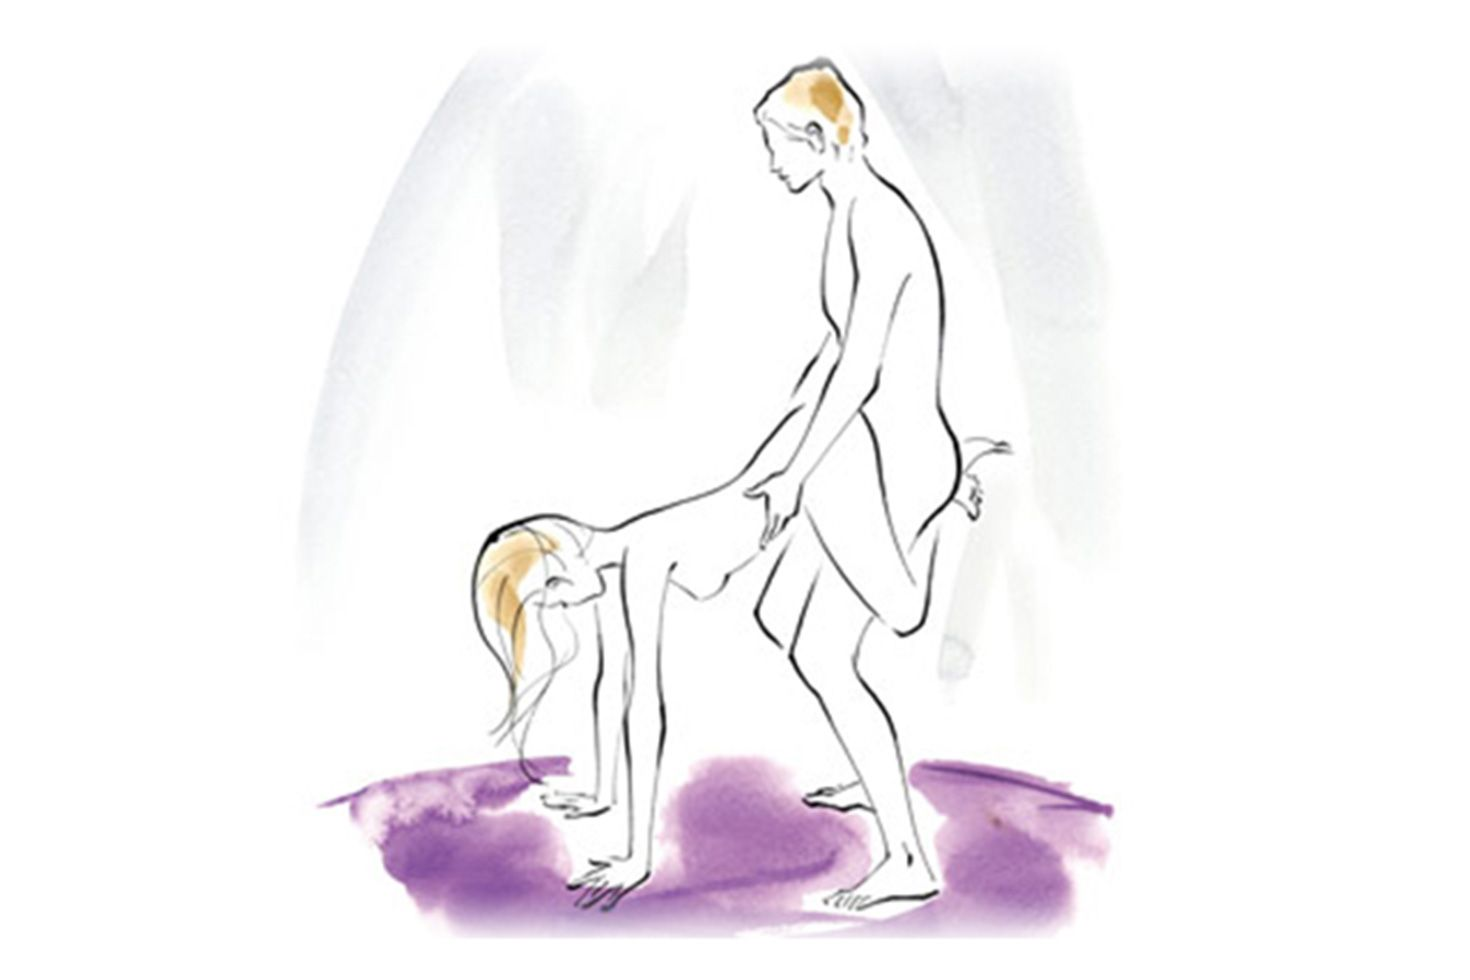 7 Standing Sex Positions You Need To Add To Your Repertoire Stat